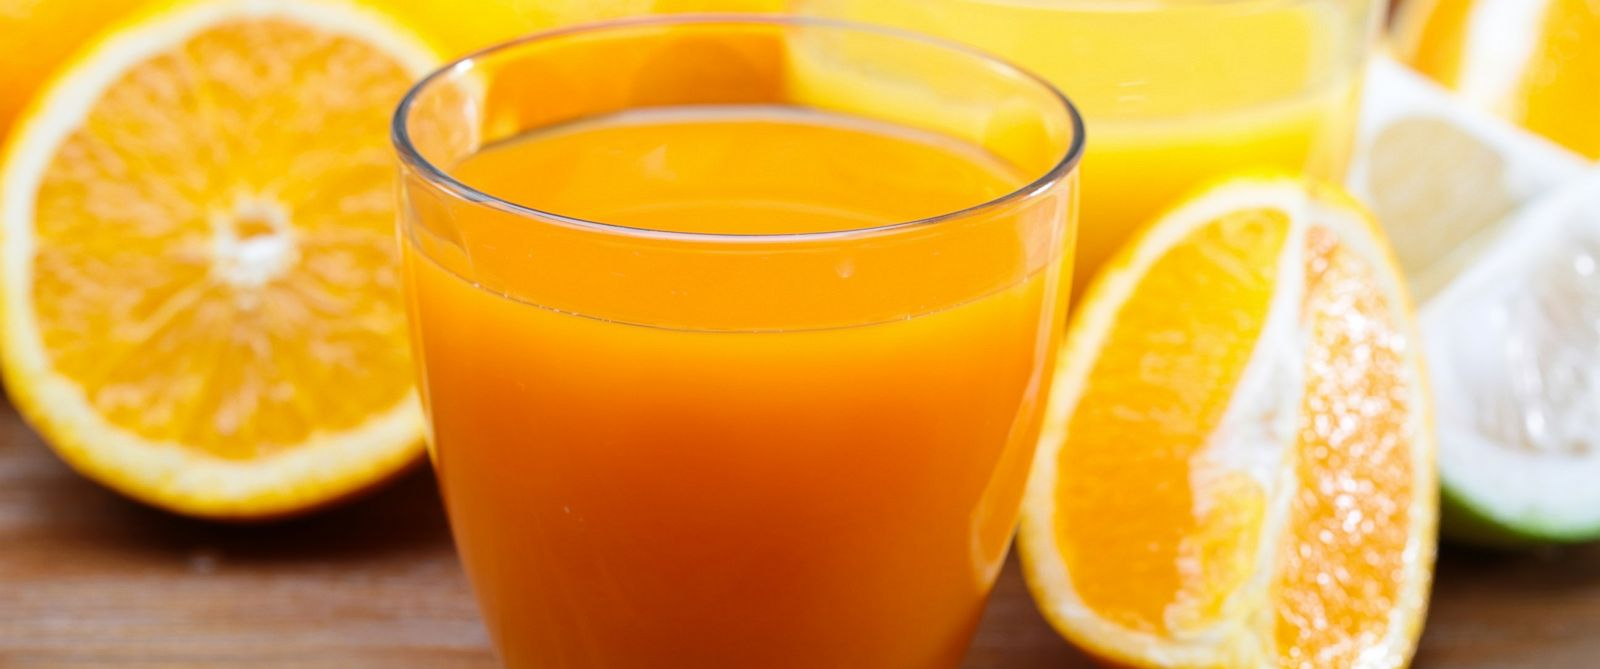 PHOTO: Freshly squeezed orange juice is seen in this stock image.